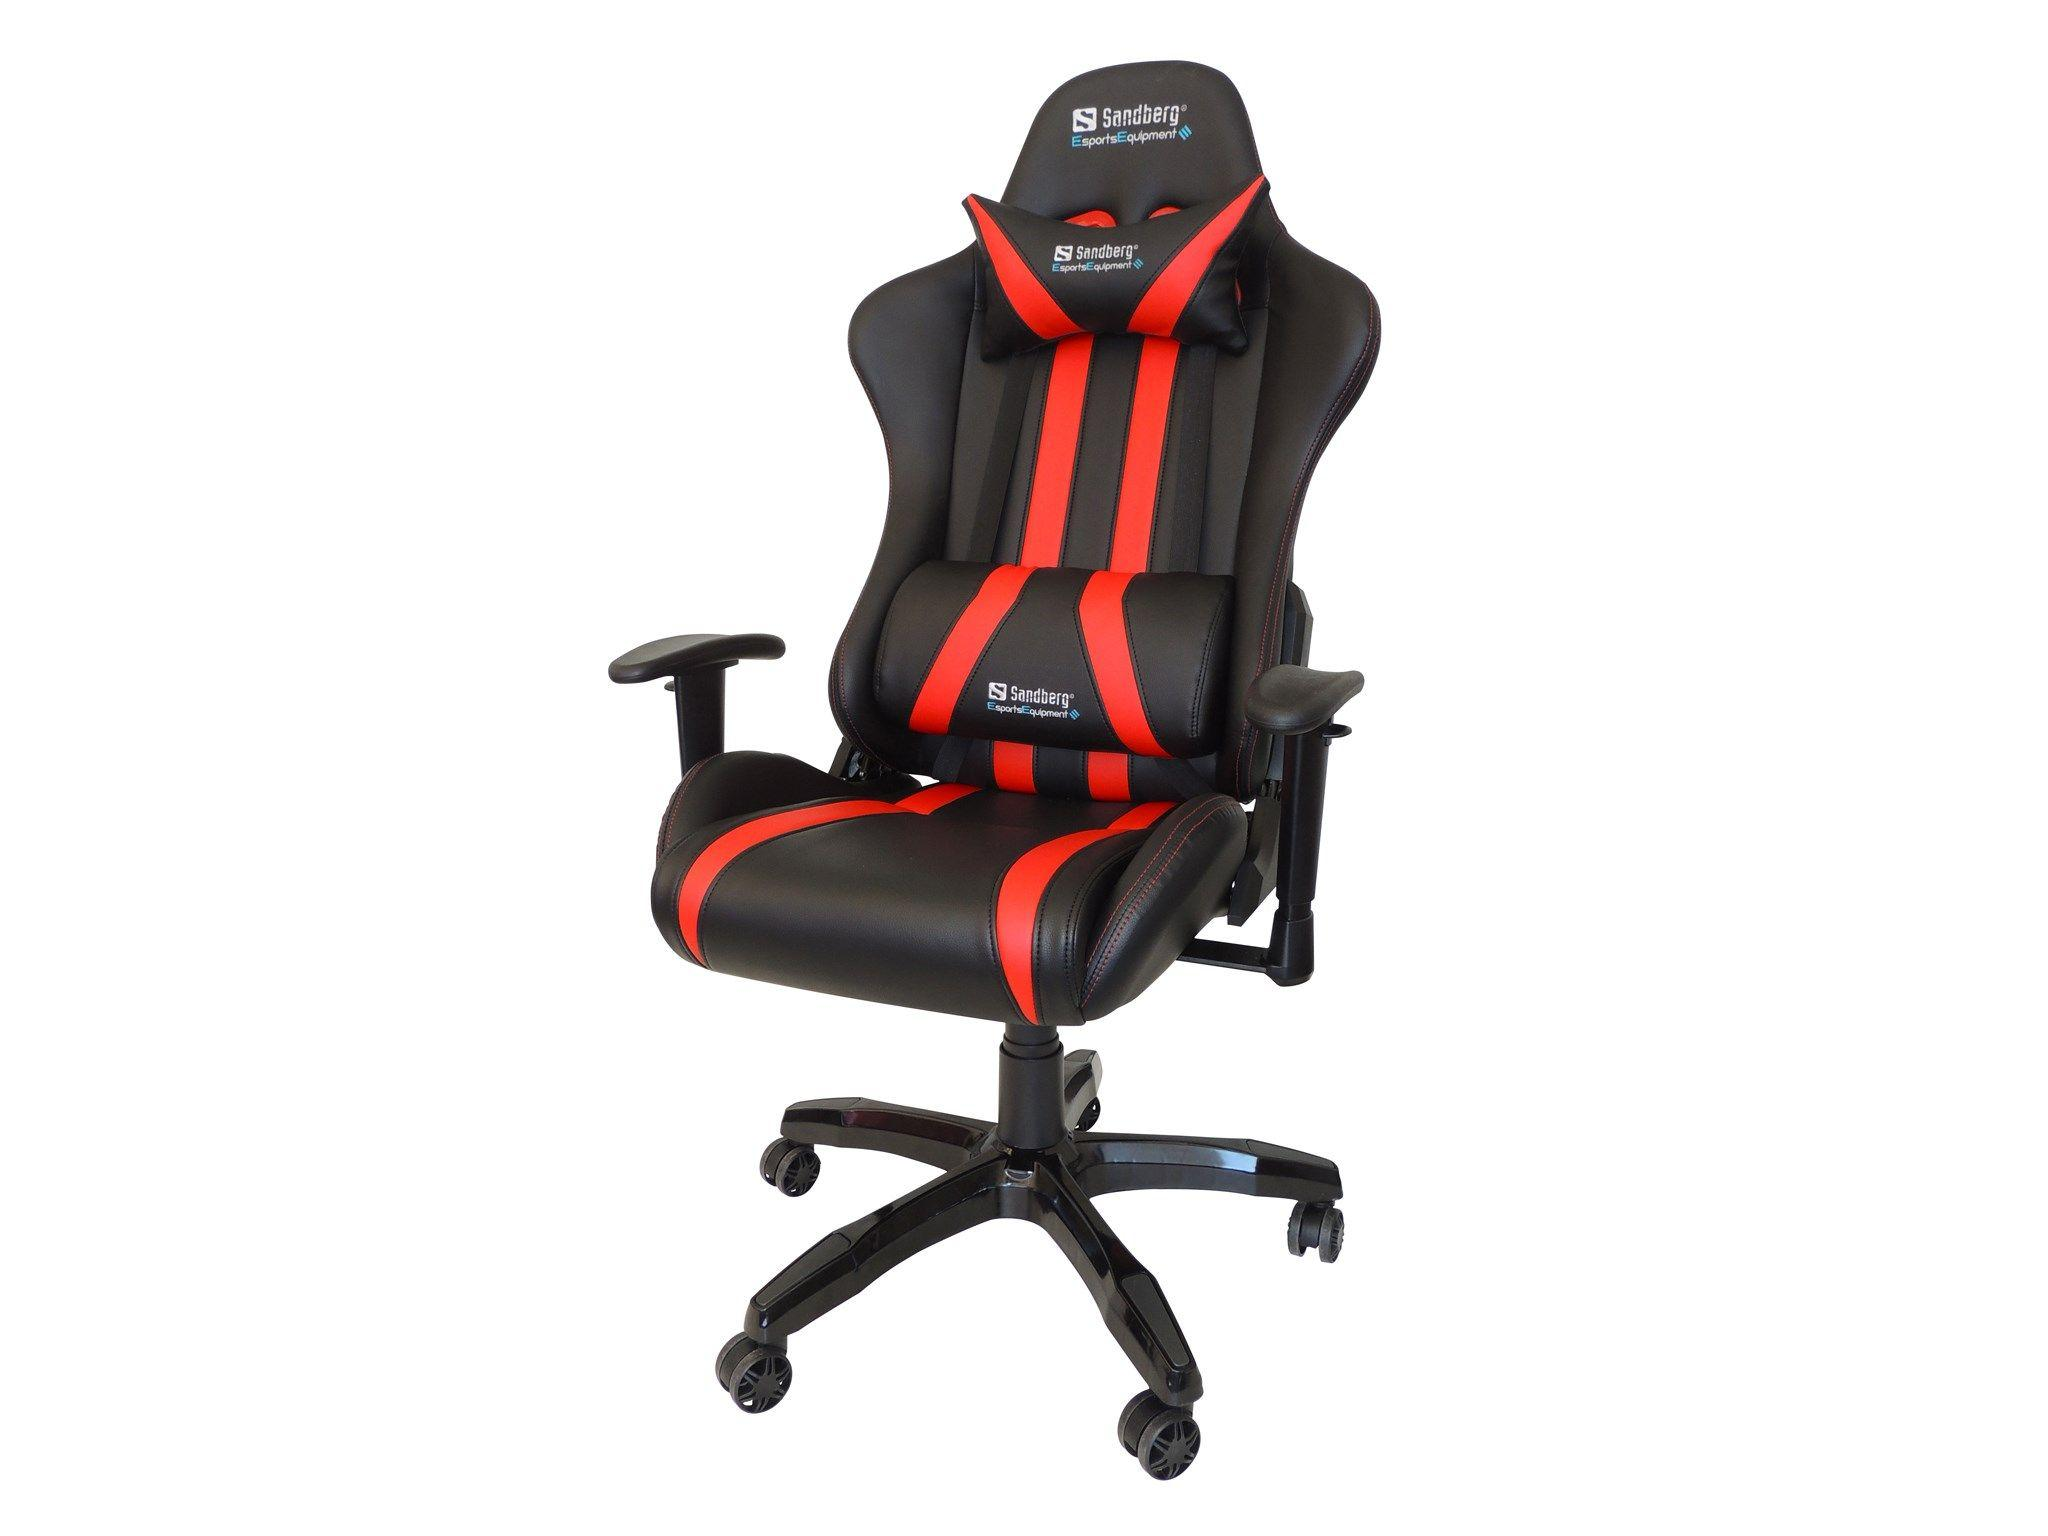 Sandberg Comma Gaming Chair V4619-6